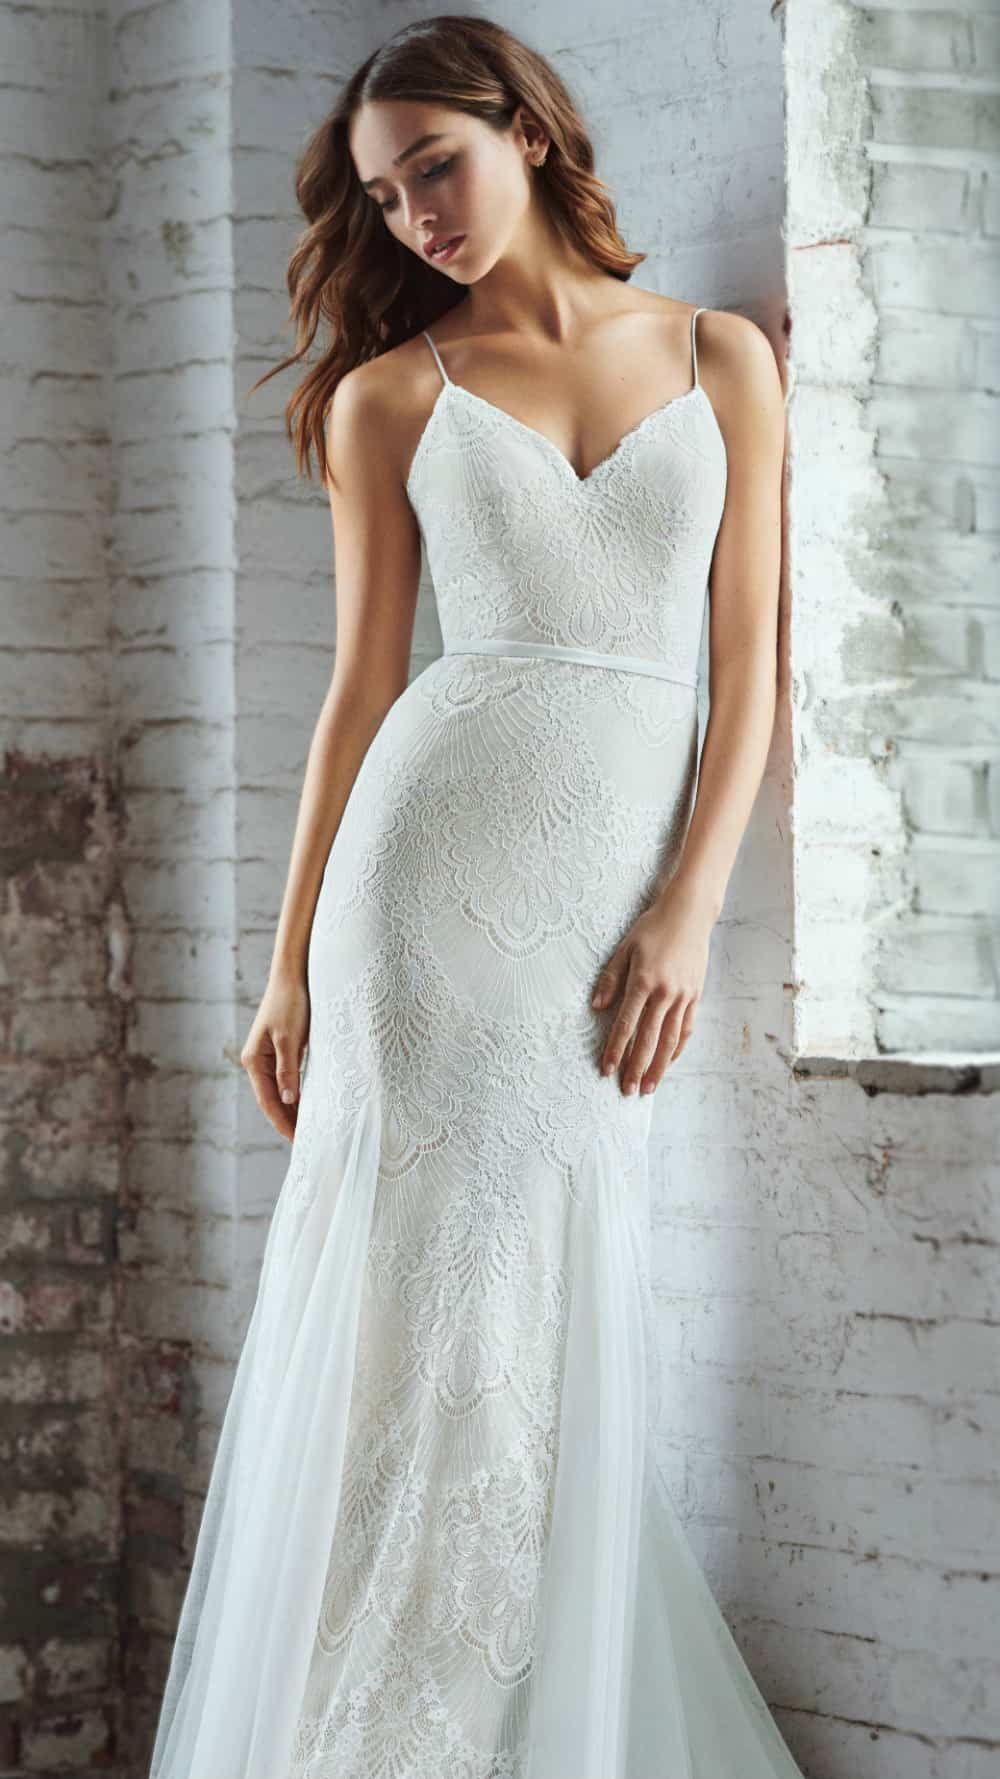 Ti adora wedding dresses fall nonstrapless wedding dresses